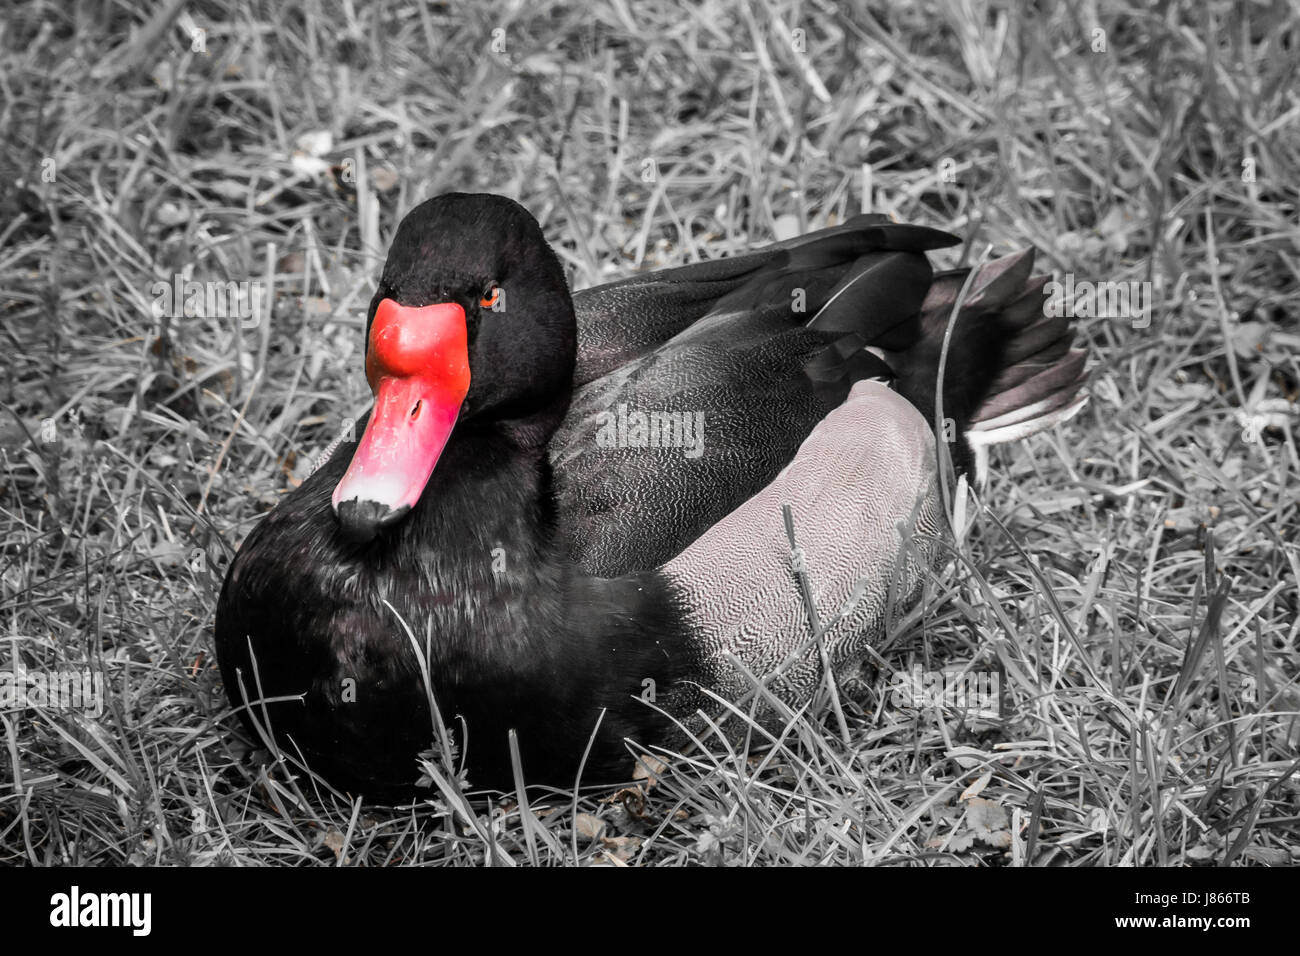 red beak of black duck with orange eyes in black and white stock